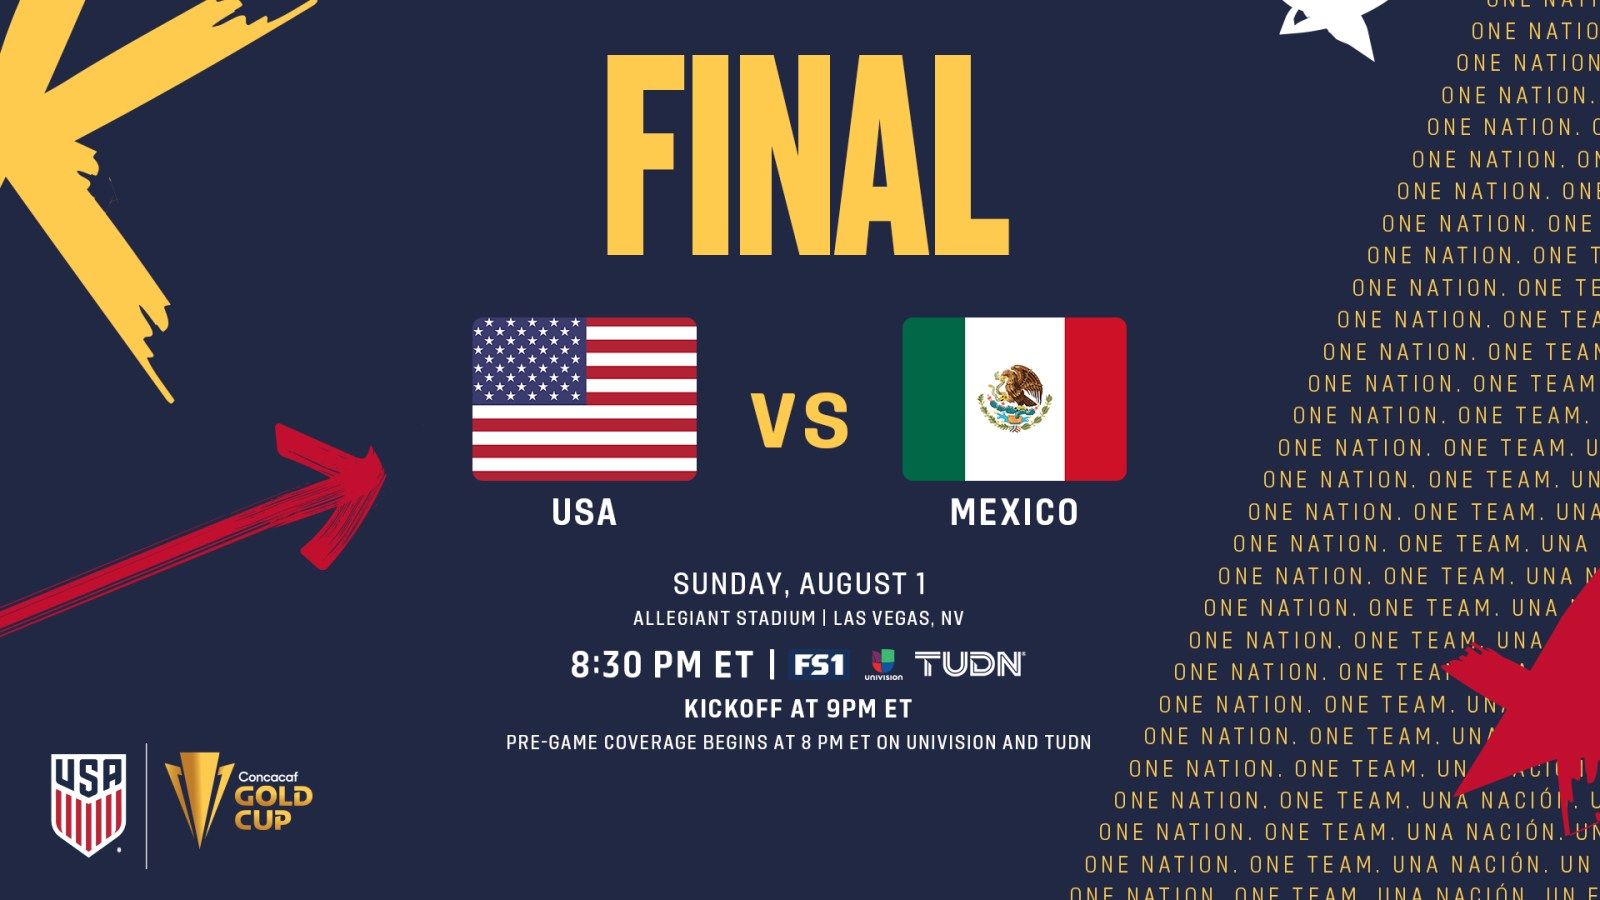 UPDATE: It will be USA vs Mexico at 5:30PM Sunday at Allegiant Stadium.